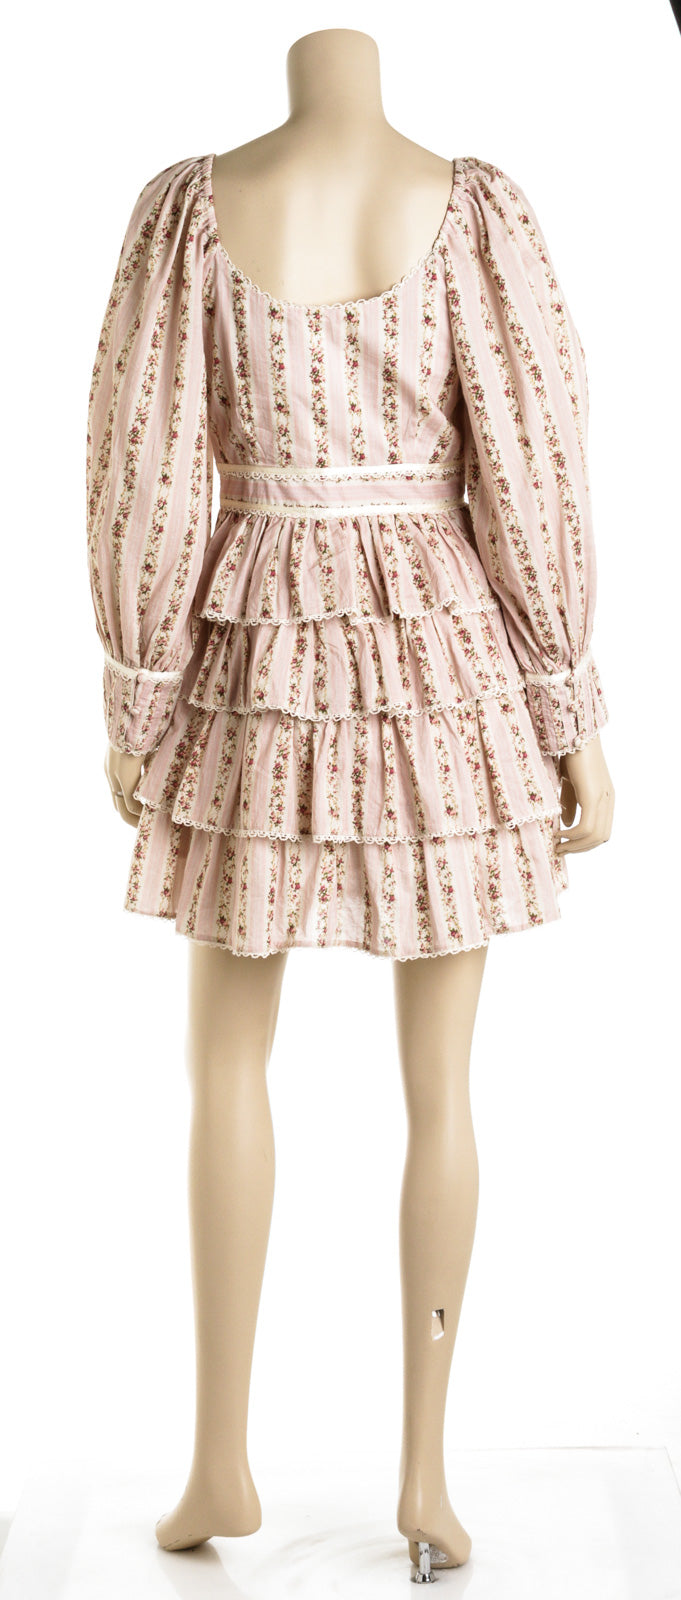 LoveShackFancy Astor Floral Pink Ruffle Dress (Size 4)